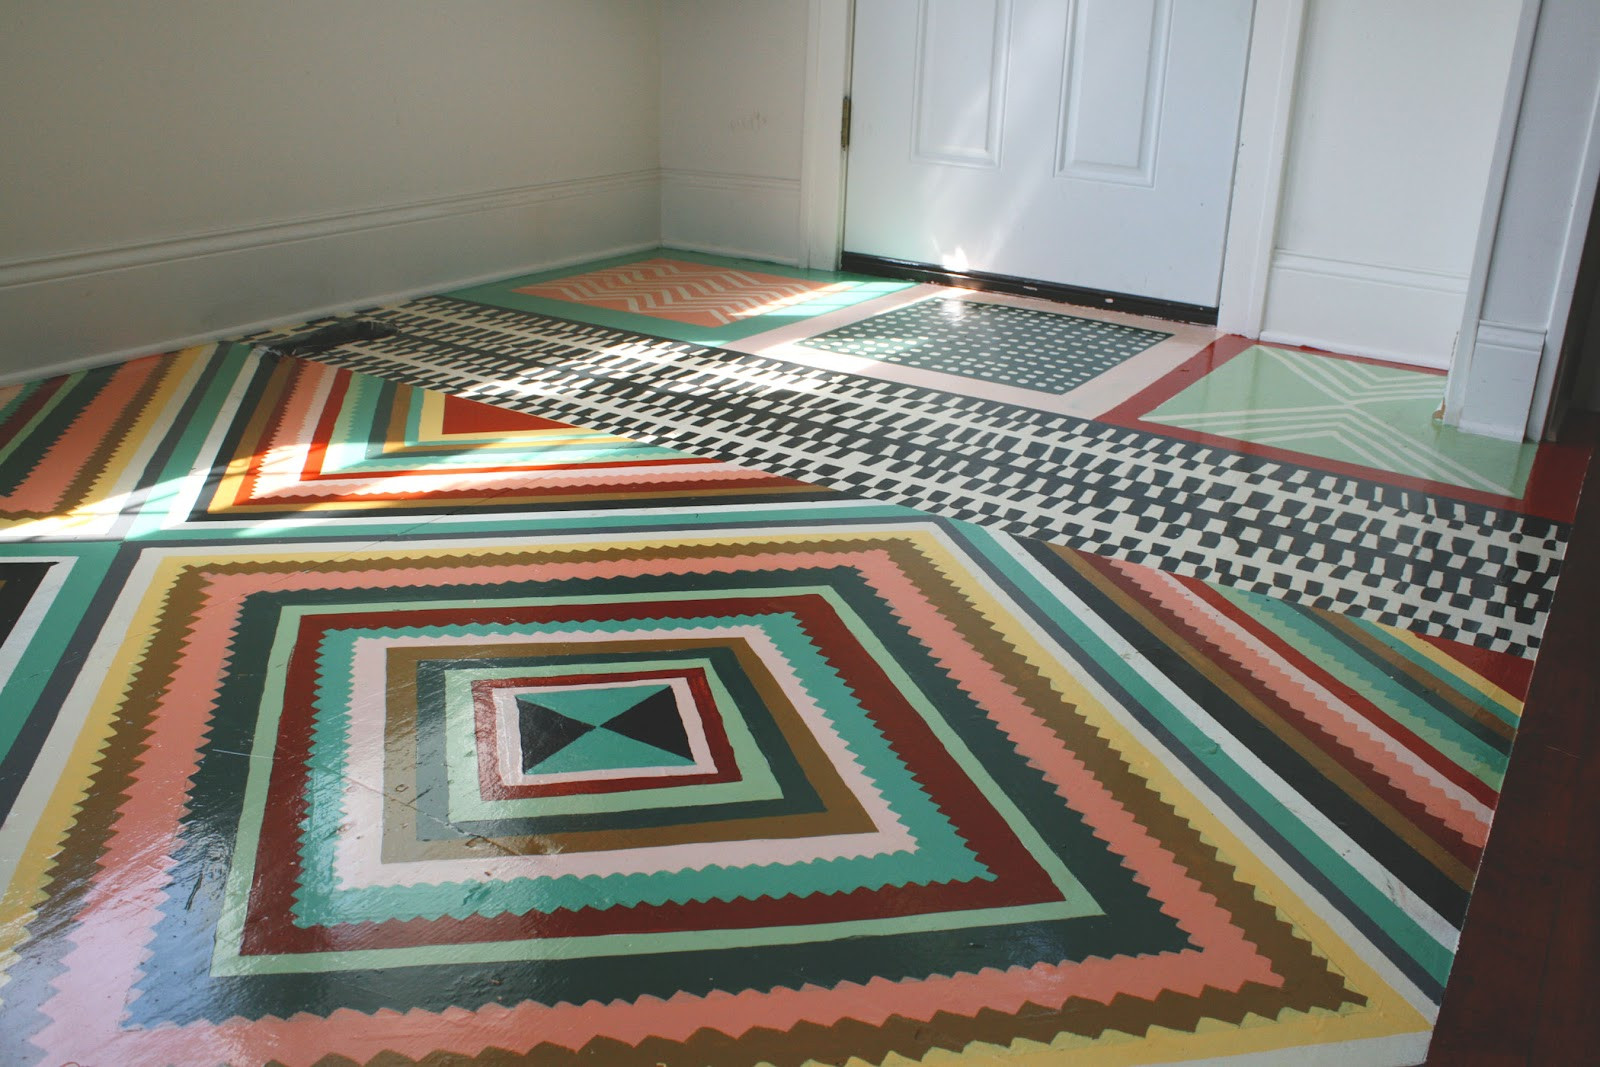 Best ideas about Painted Floors DIY . Save or Pin SHIP & SHAPE DIY Painted Floor Now.